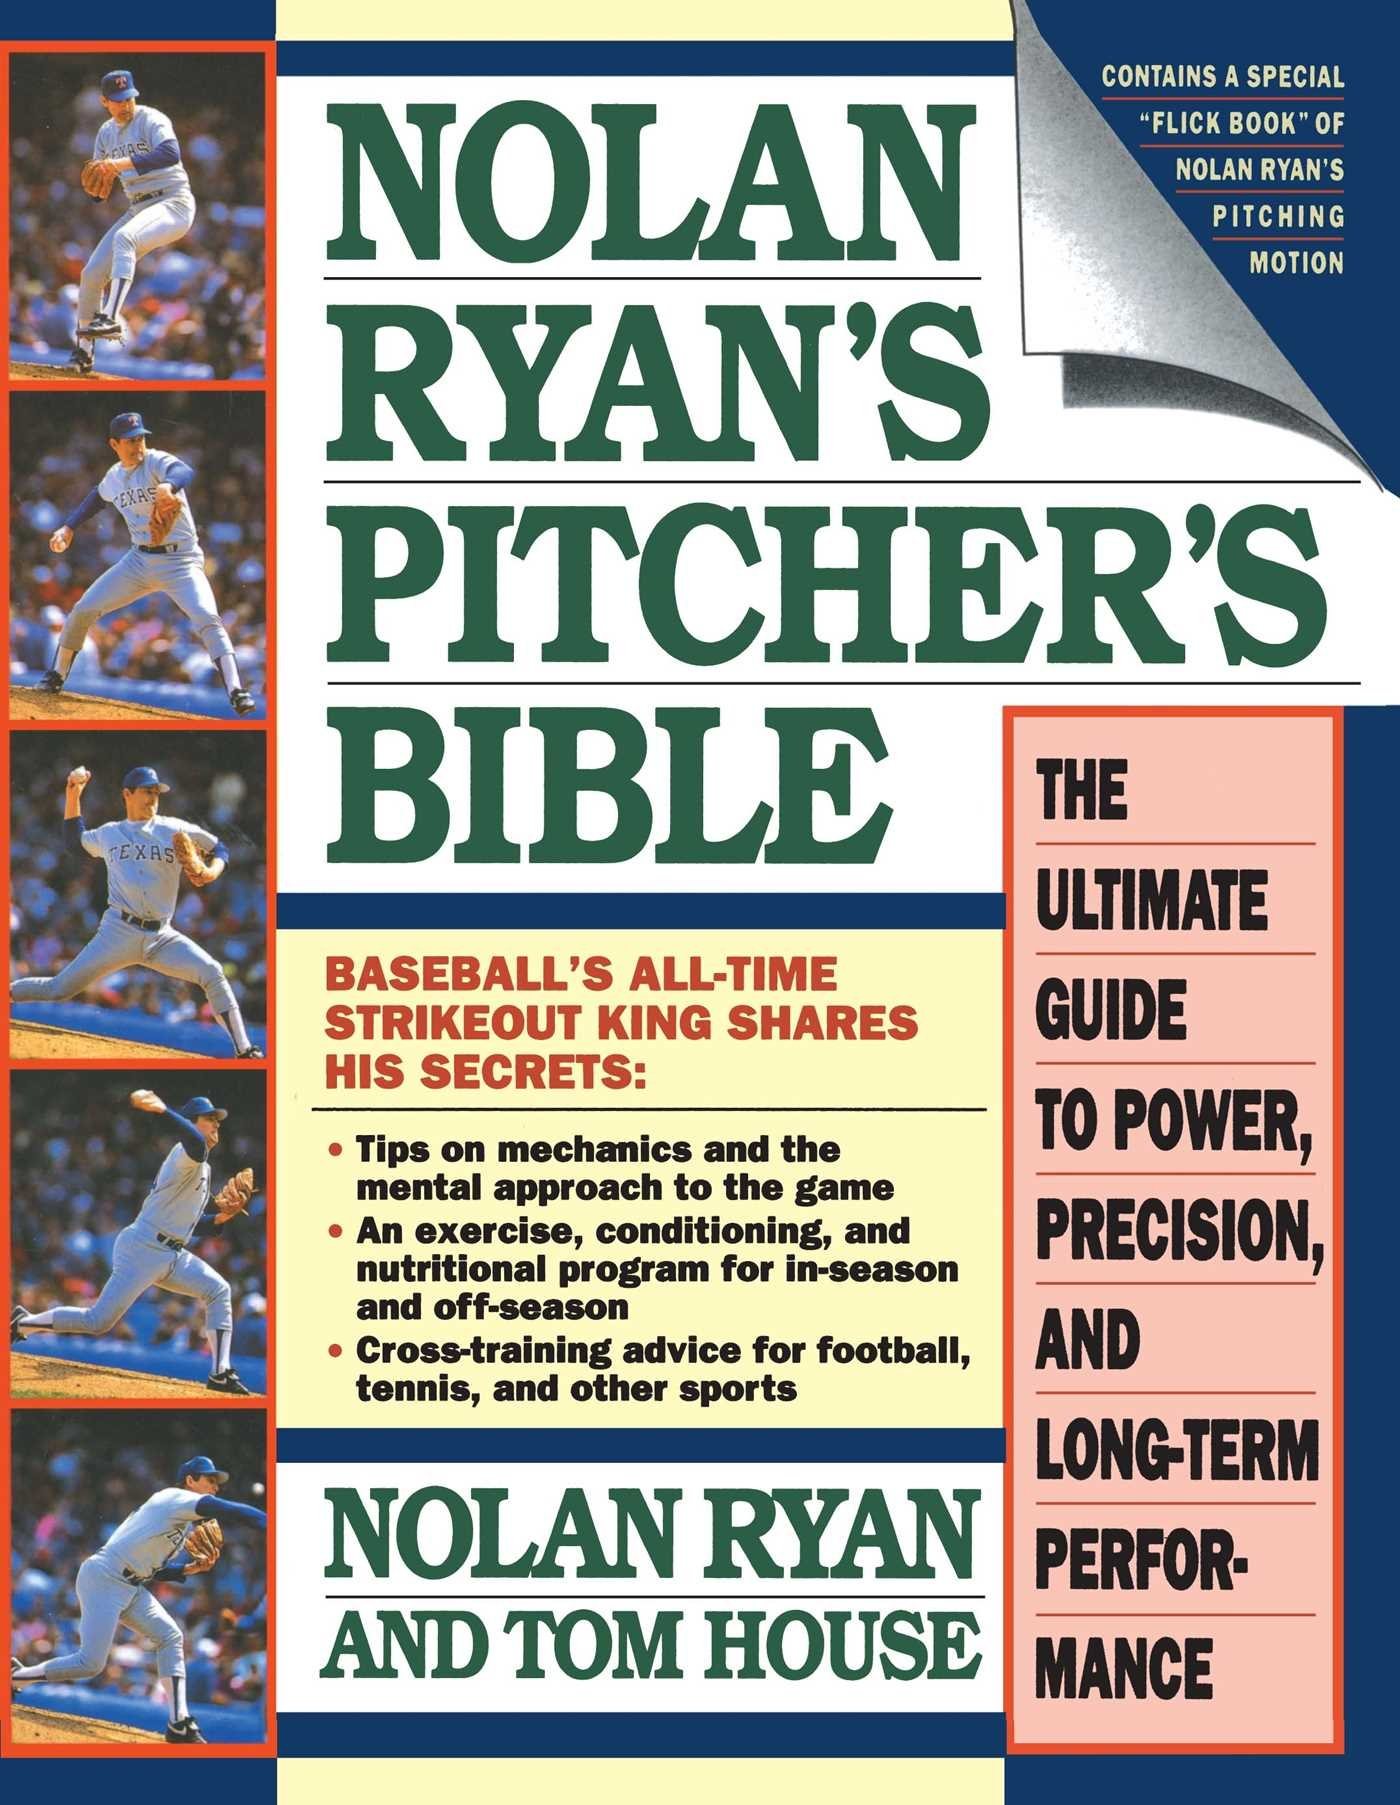 Nolan Ryan's Pitcher's Bible: The Ultimate Guide to Power, Precision, and  Long-Term Performance: Tom House, Jim Rosenthal, Nolan Ryan: 9780671705817:  ...